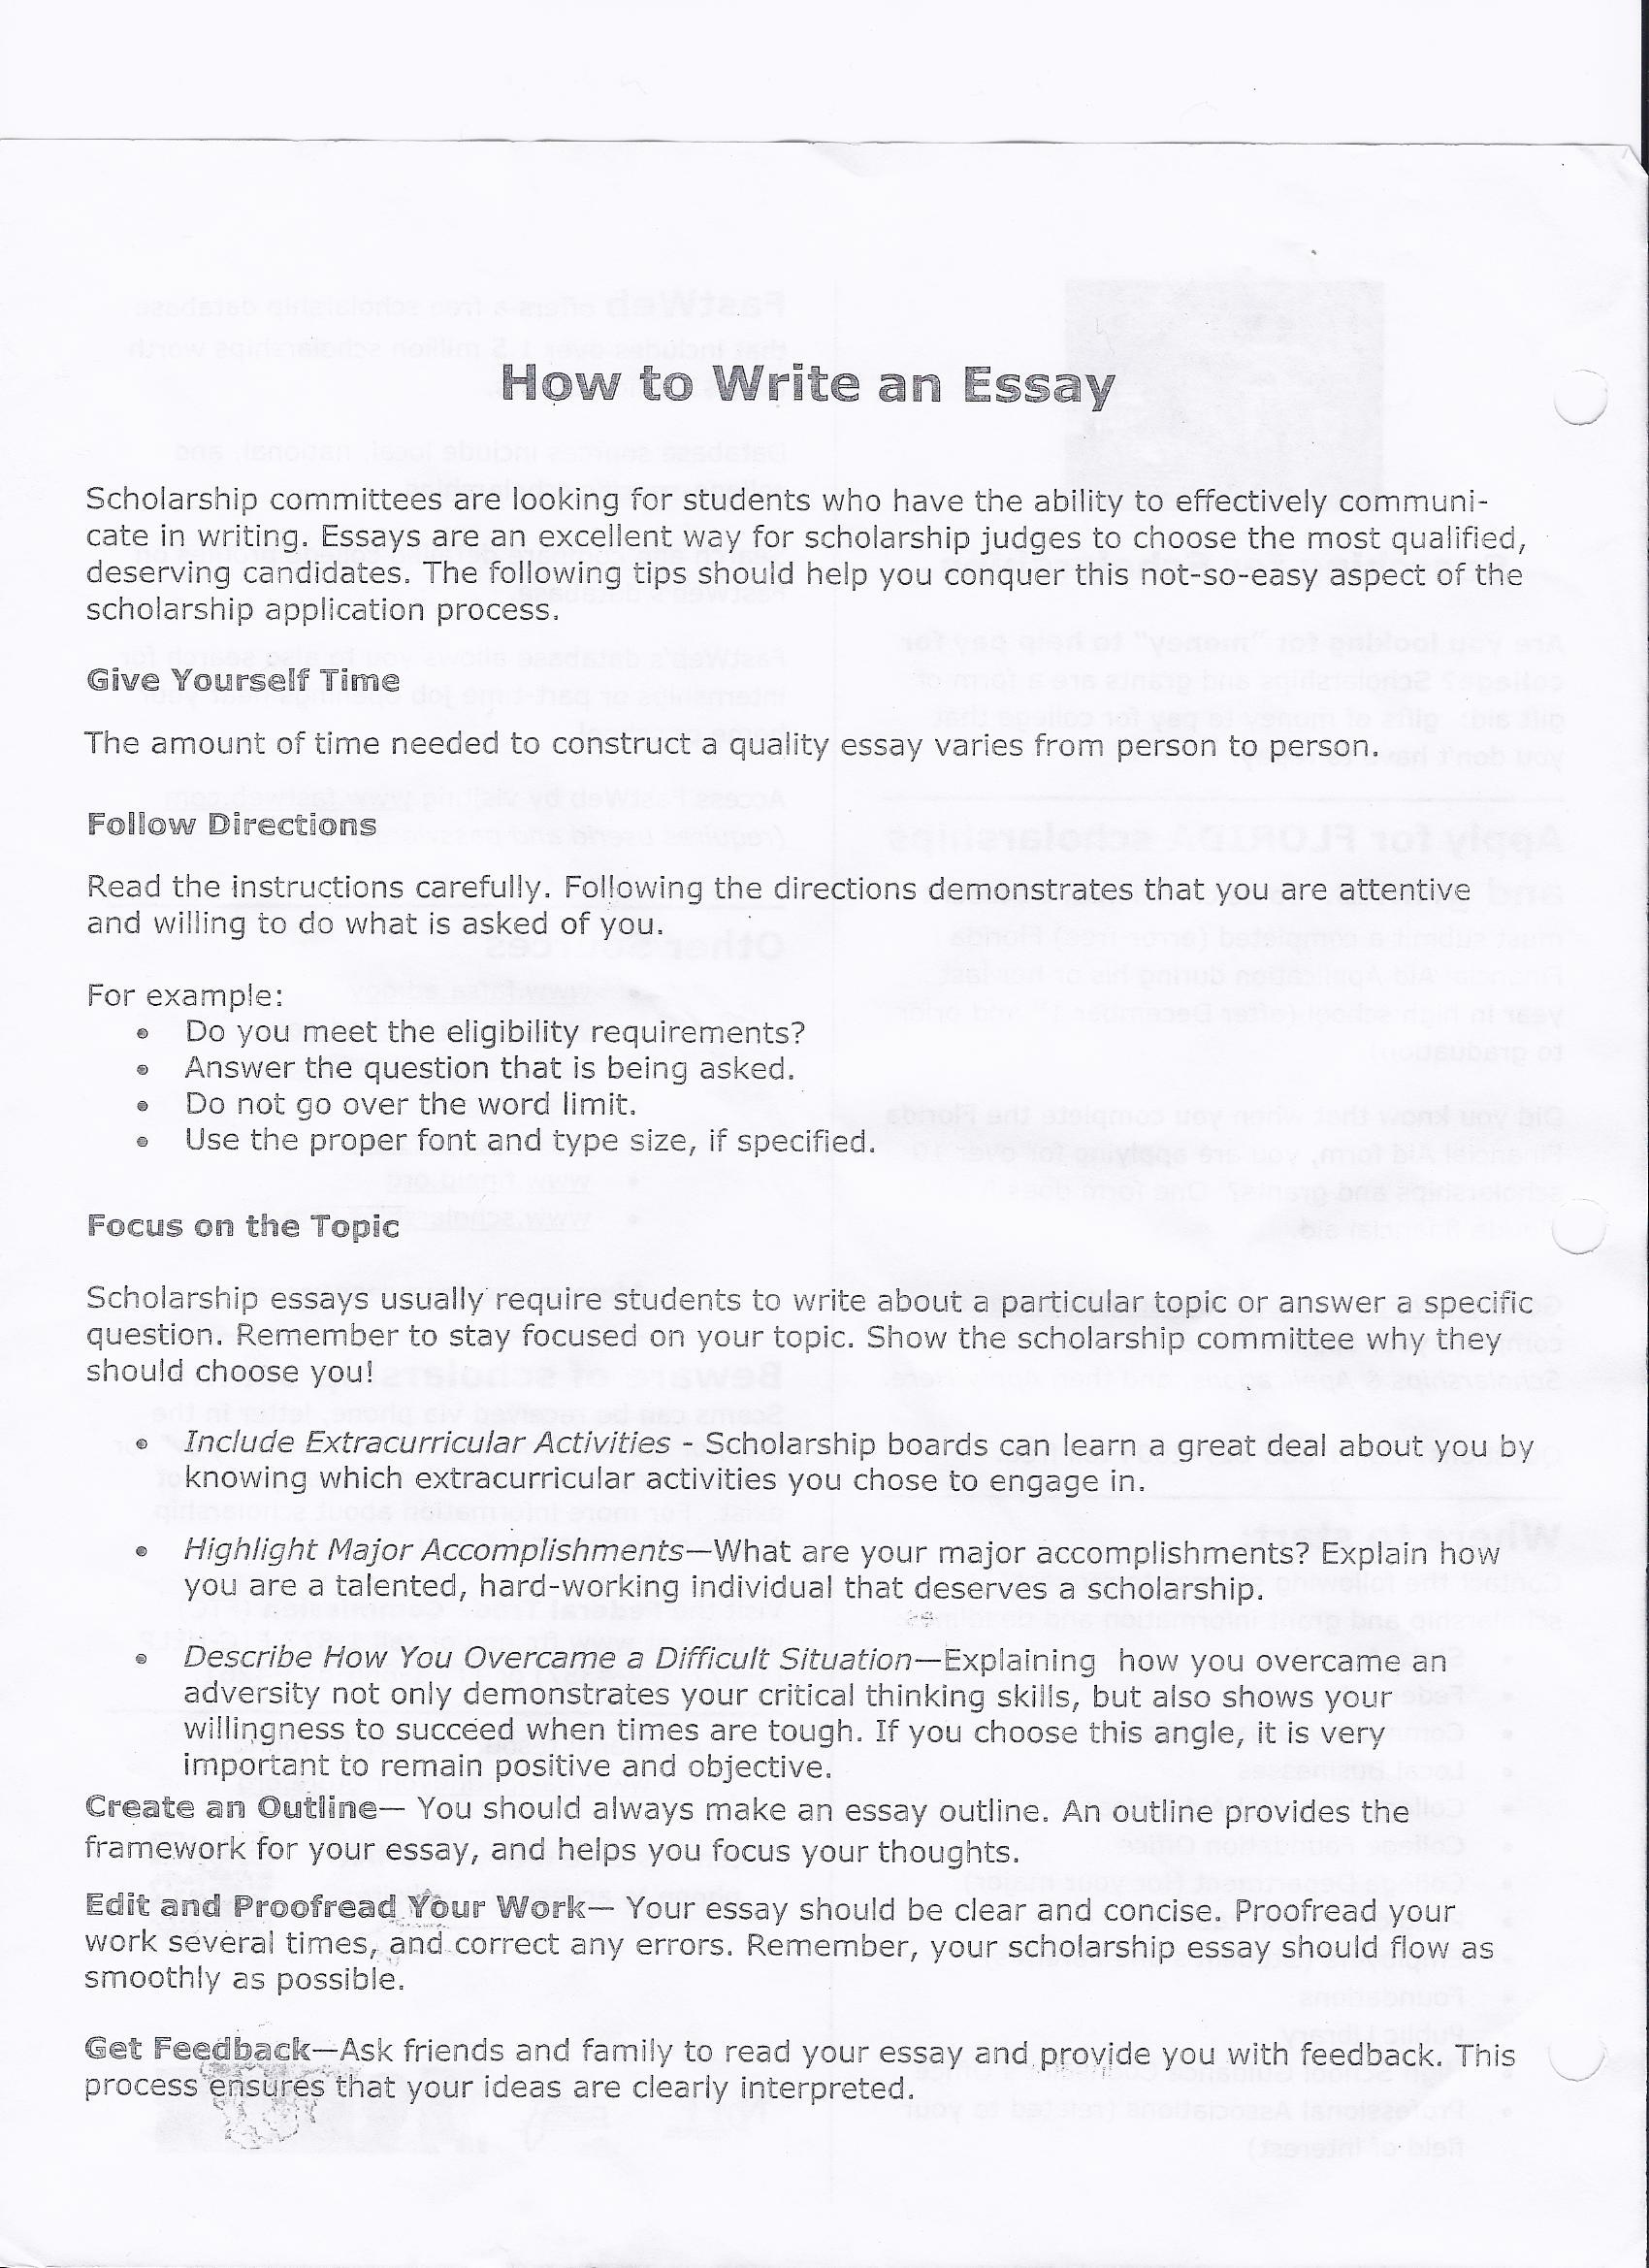 list of college subjects in 1776 being helpful essay